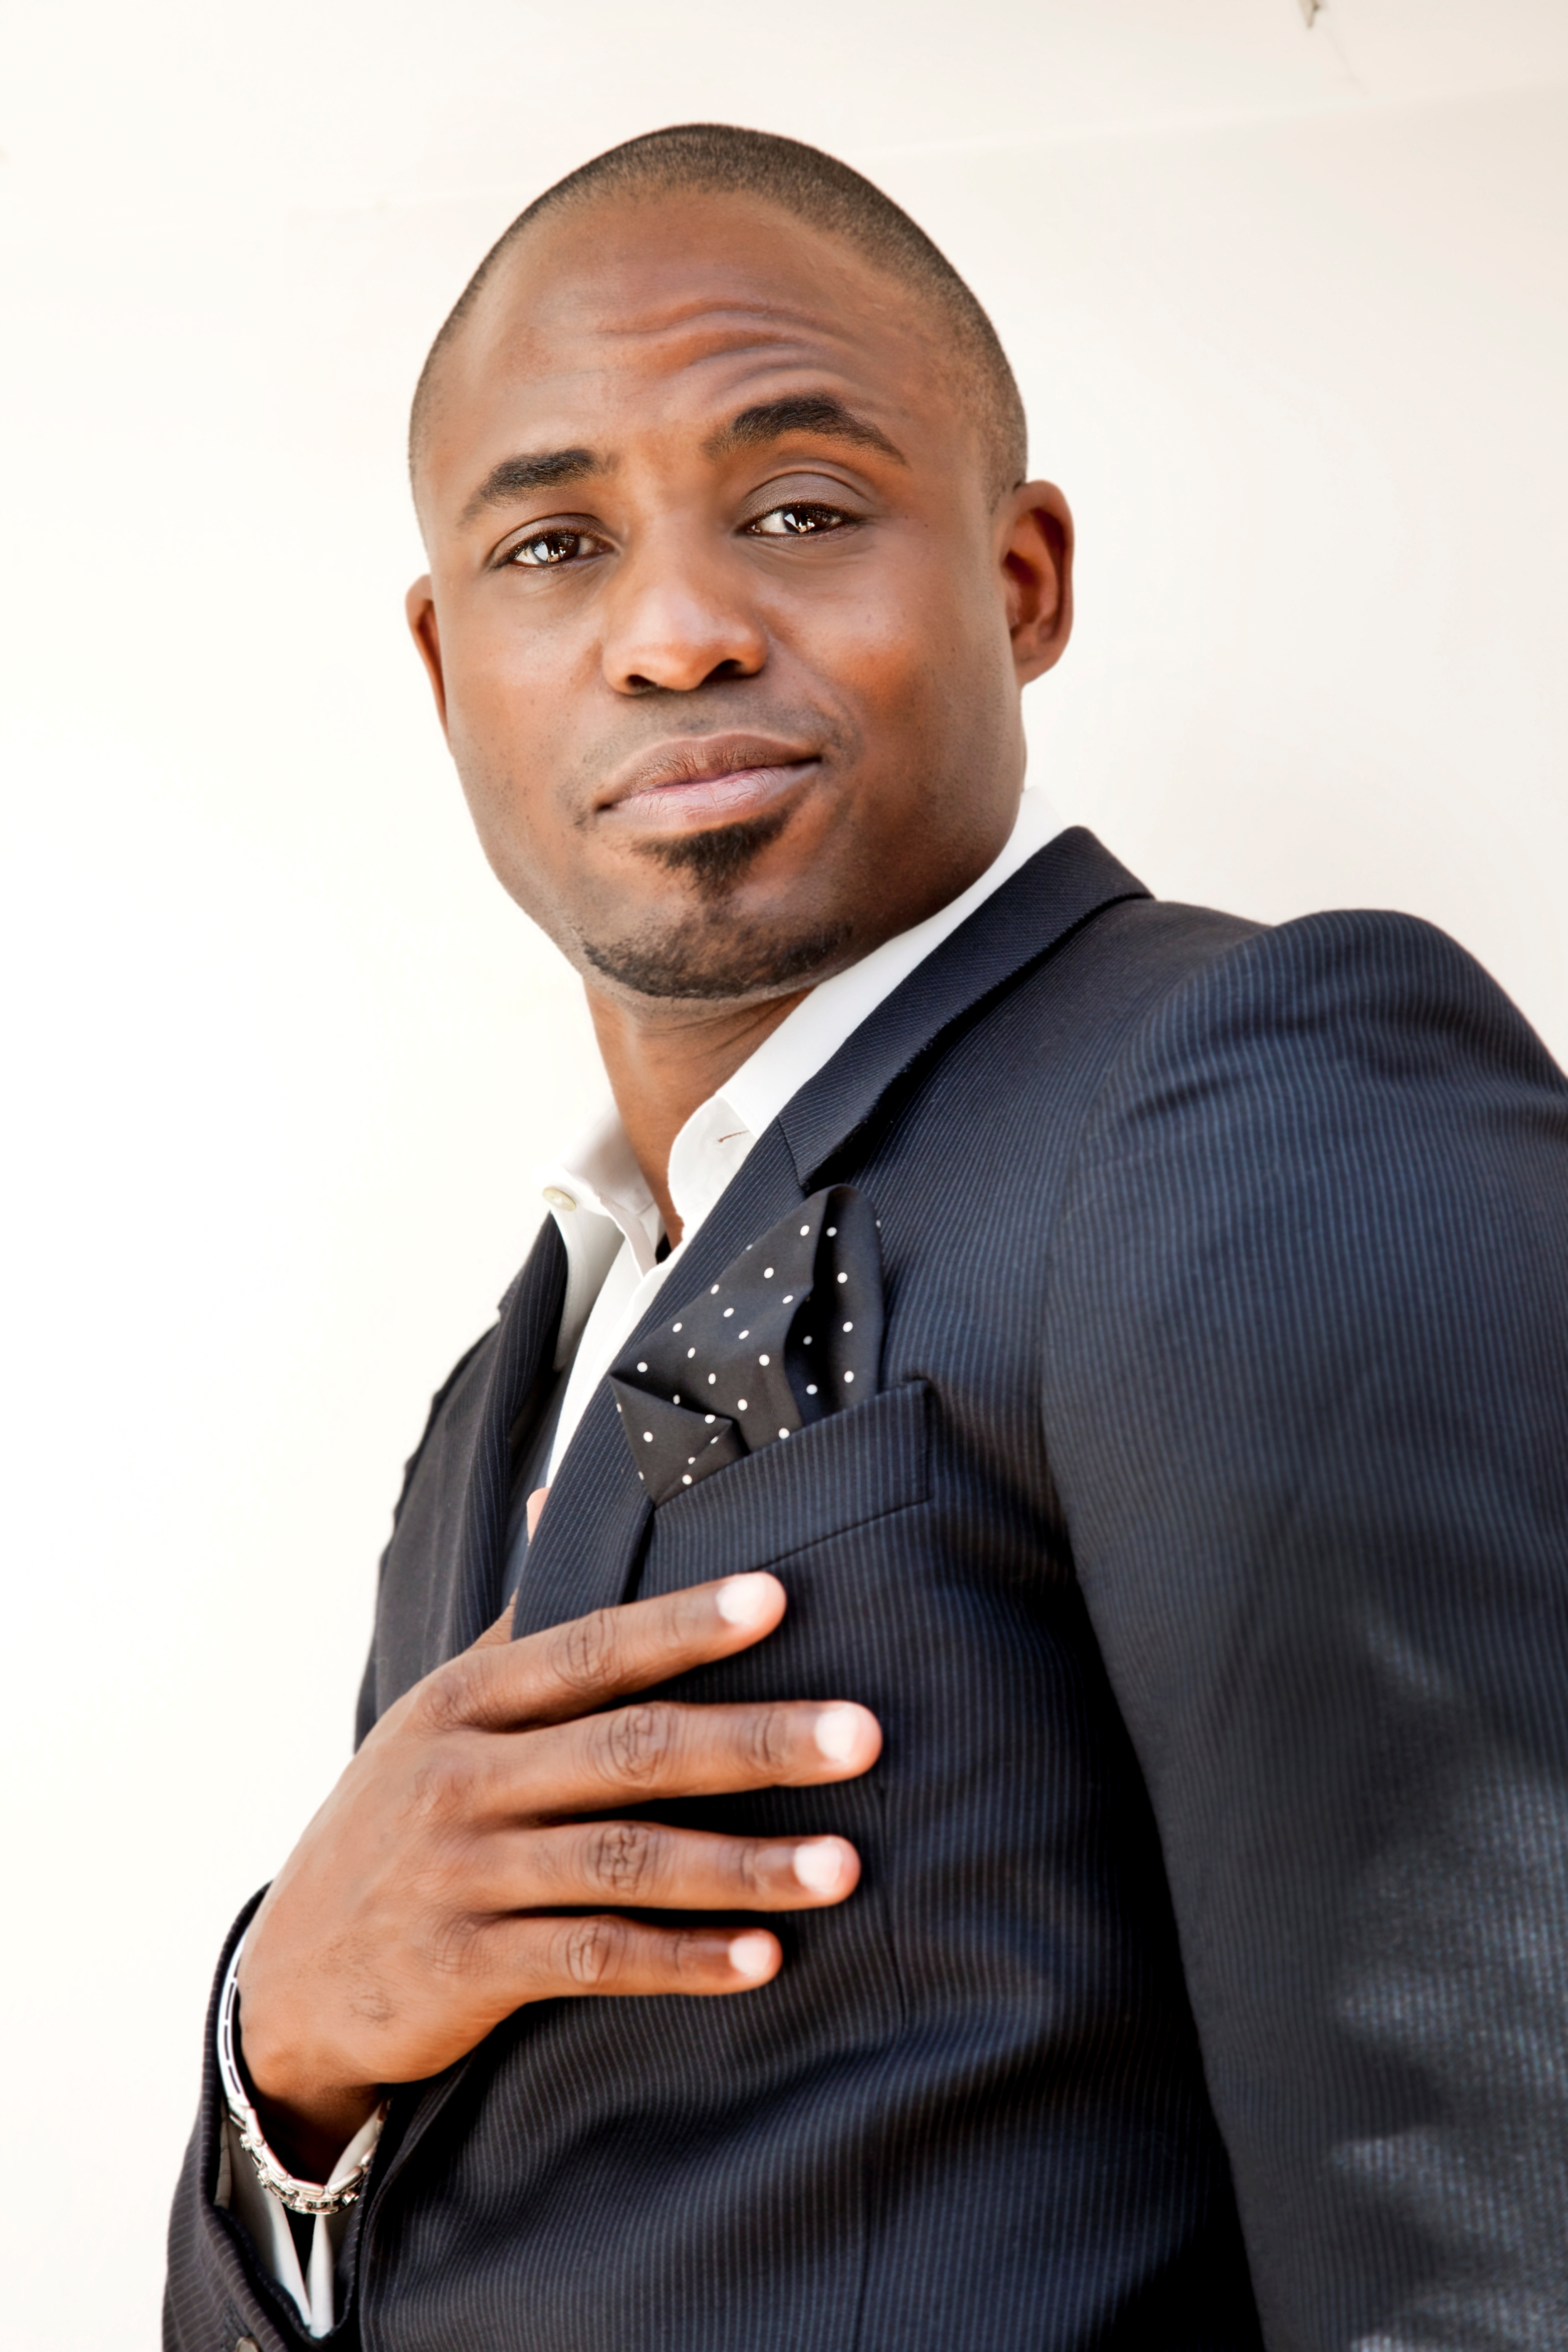 Funnyman Wayne Brady returns to The Mirage June 1 - 2 at 10 p.m. nightly.